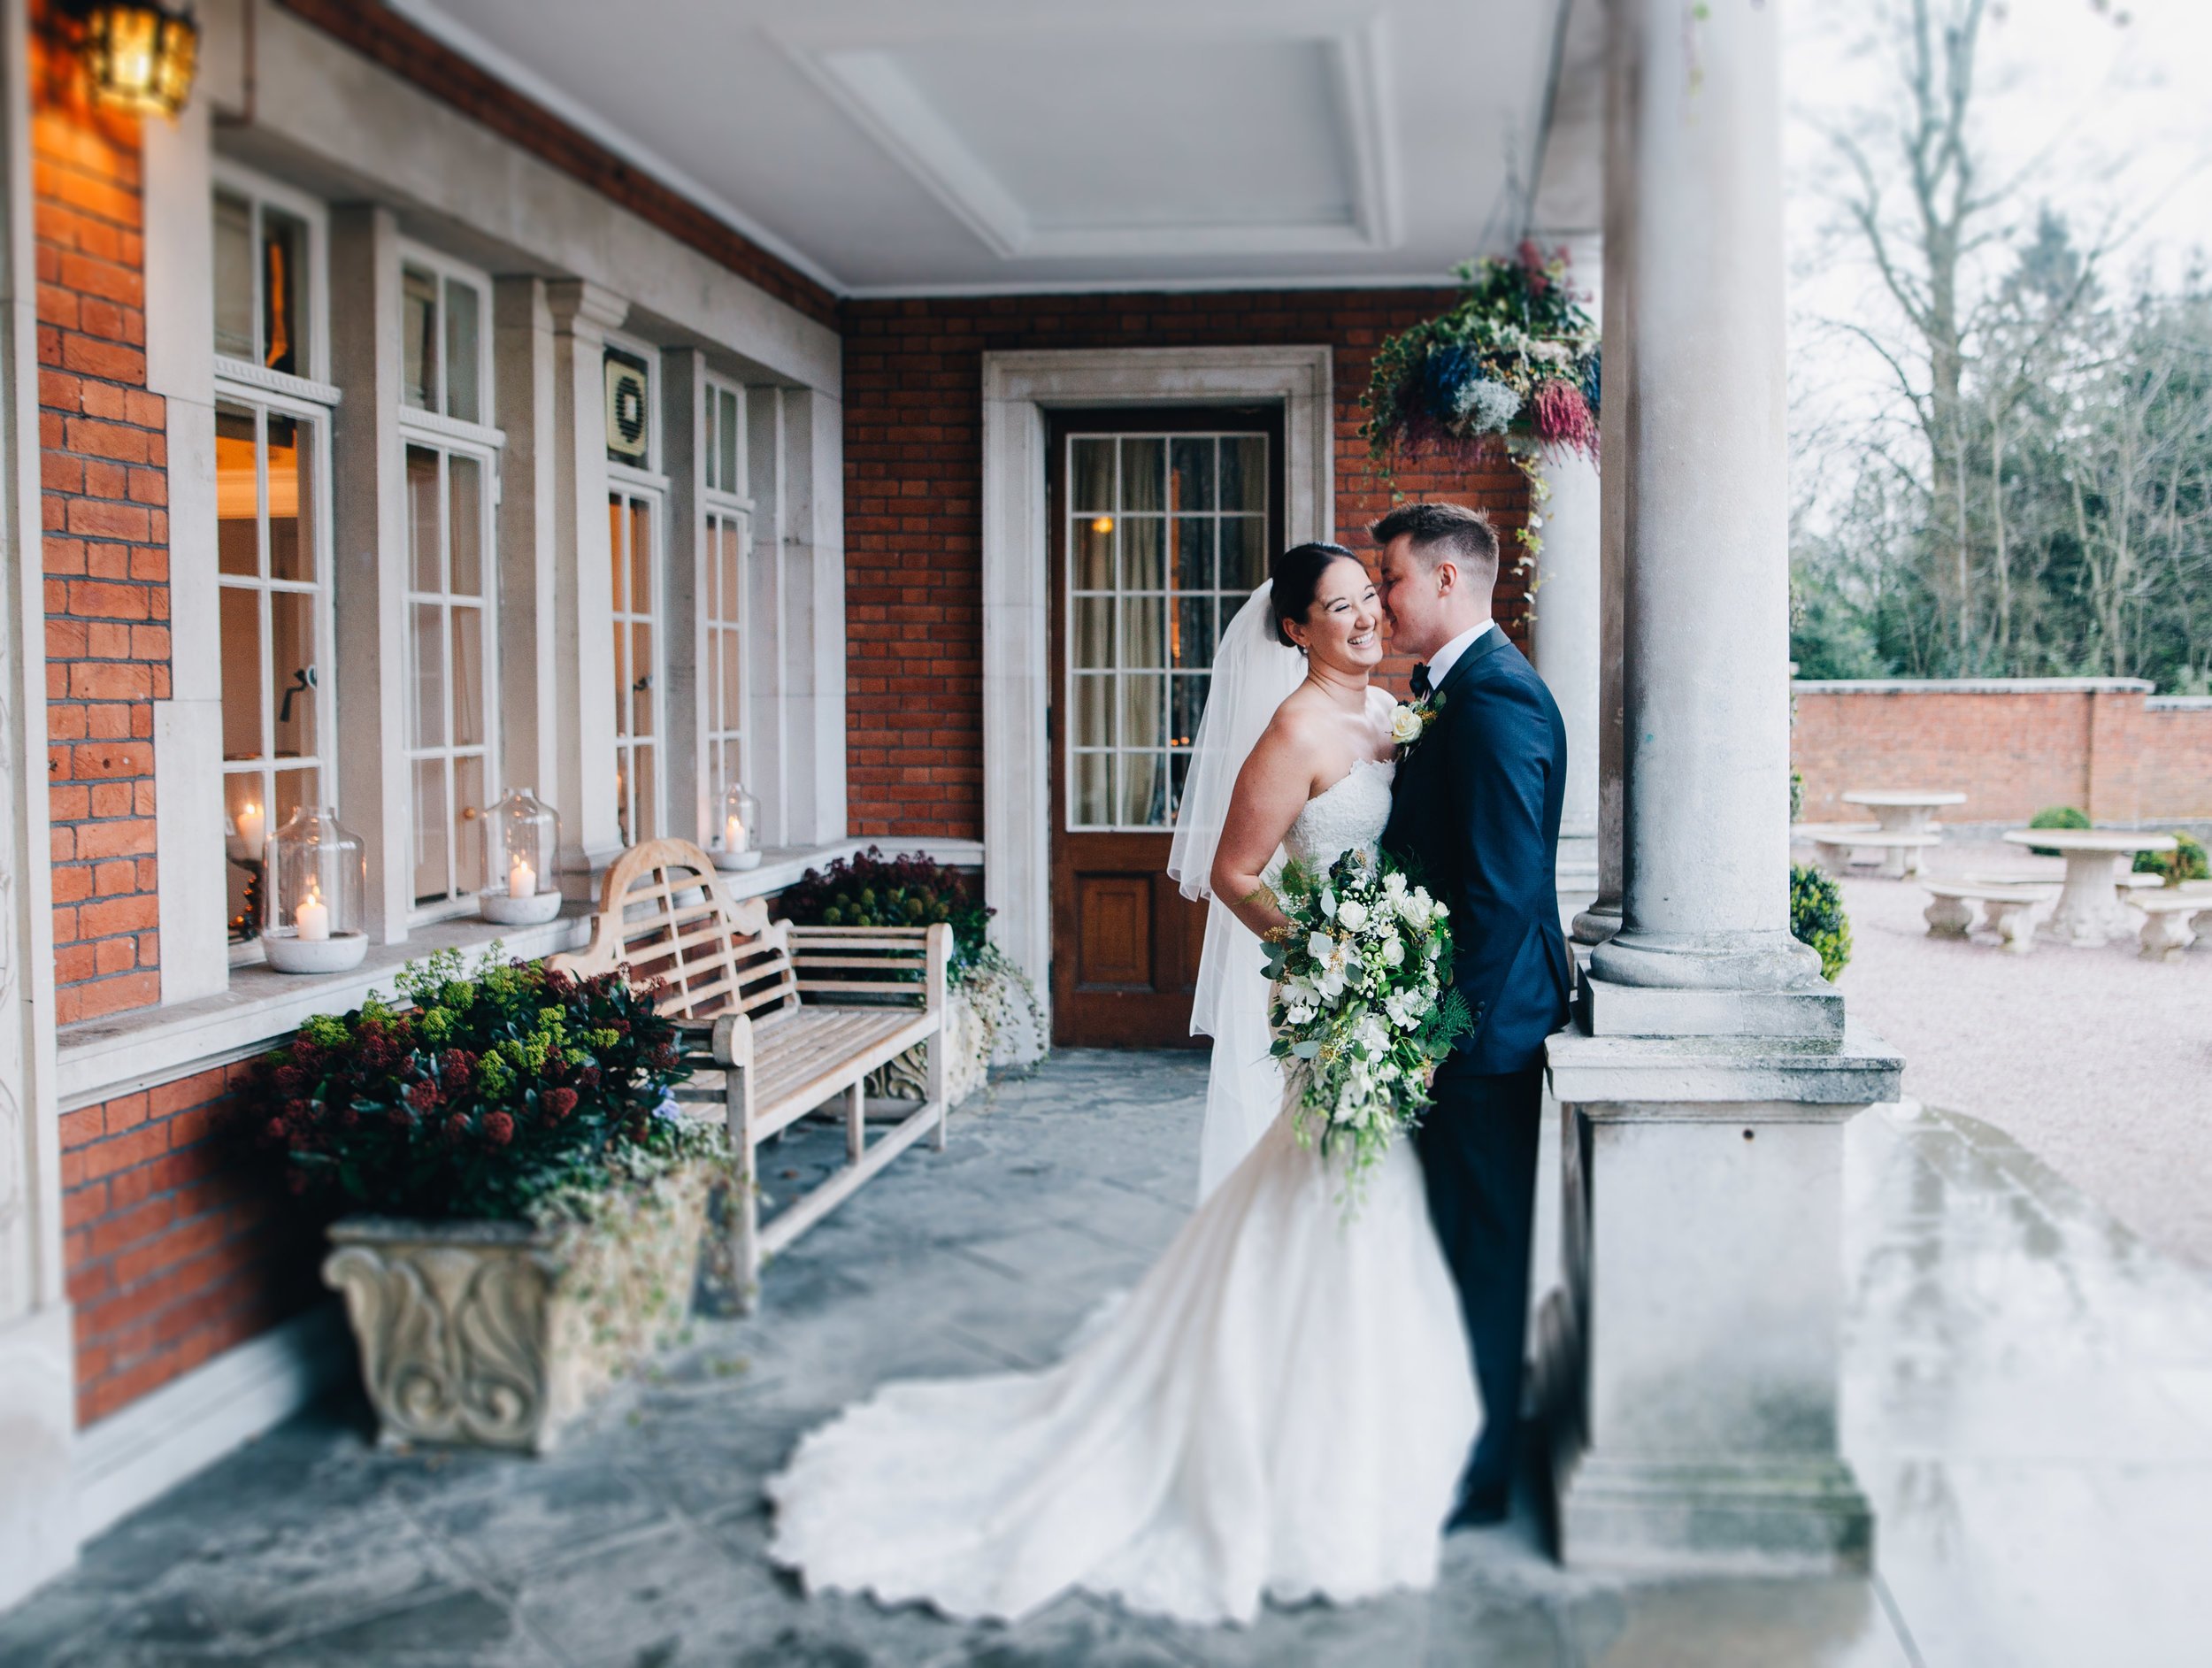 Wedding pictures at Eaves Hall - a stylish winter wedding